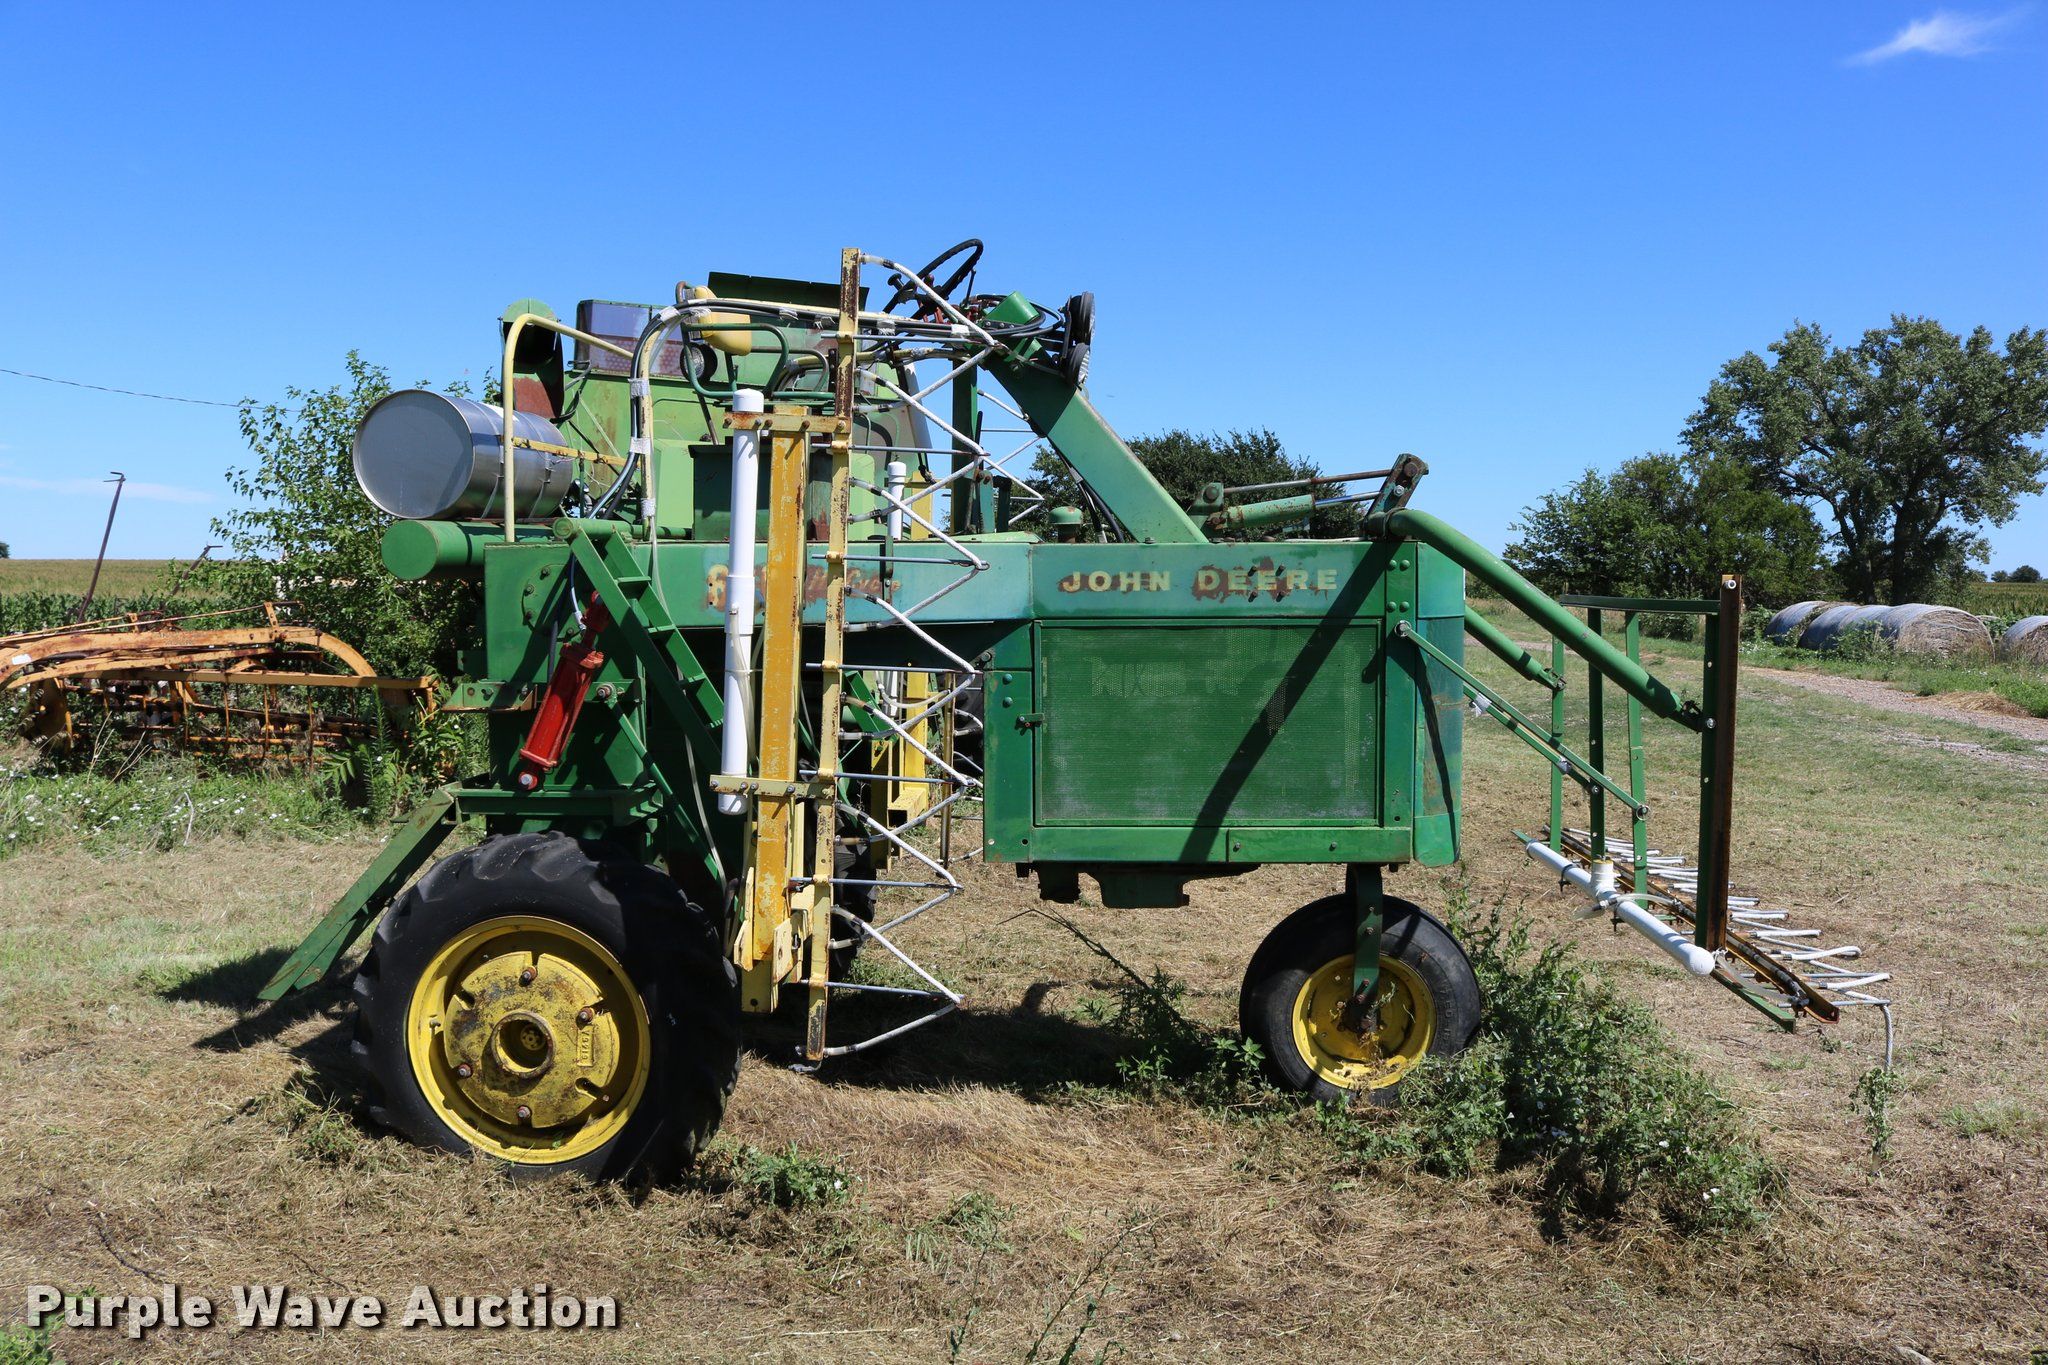 ... John Deere Hi-Cycle 600 self-propelled applicator Full size in new  window ...